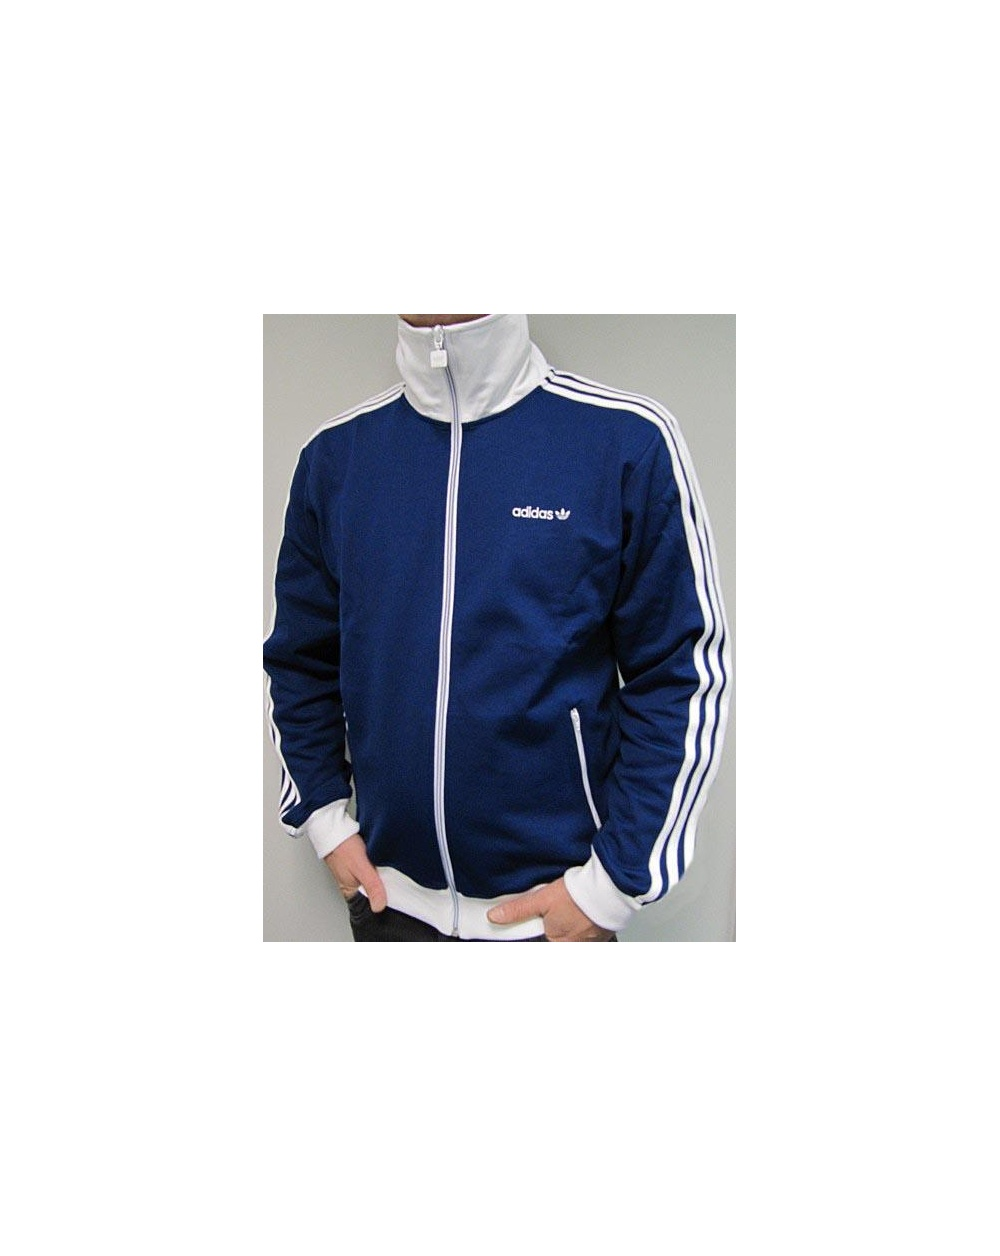 Adidas Originals Beckenbauer Track Top Navy White - Tracksuit Top 9ce9b70e67